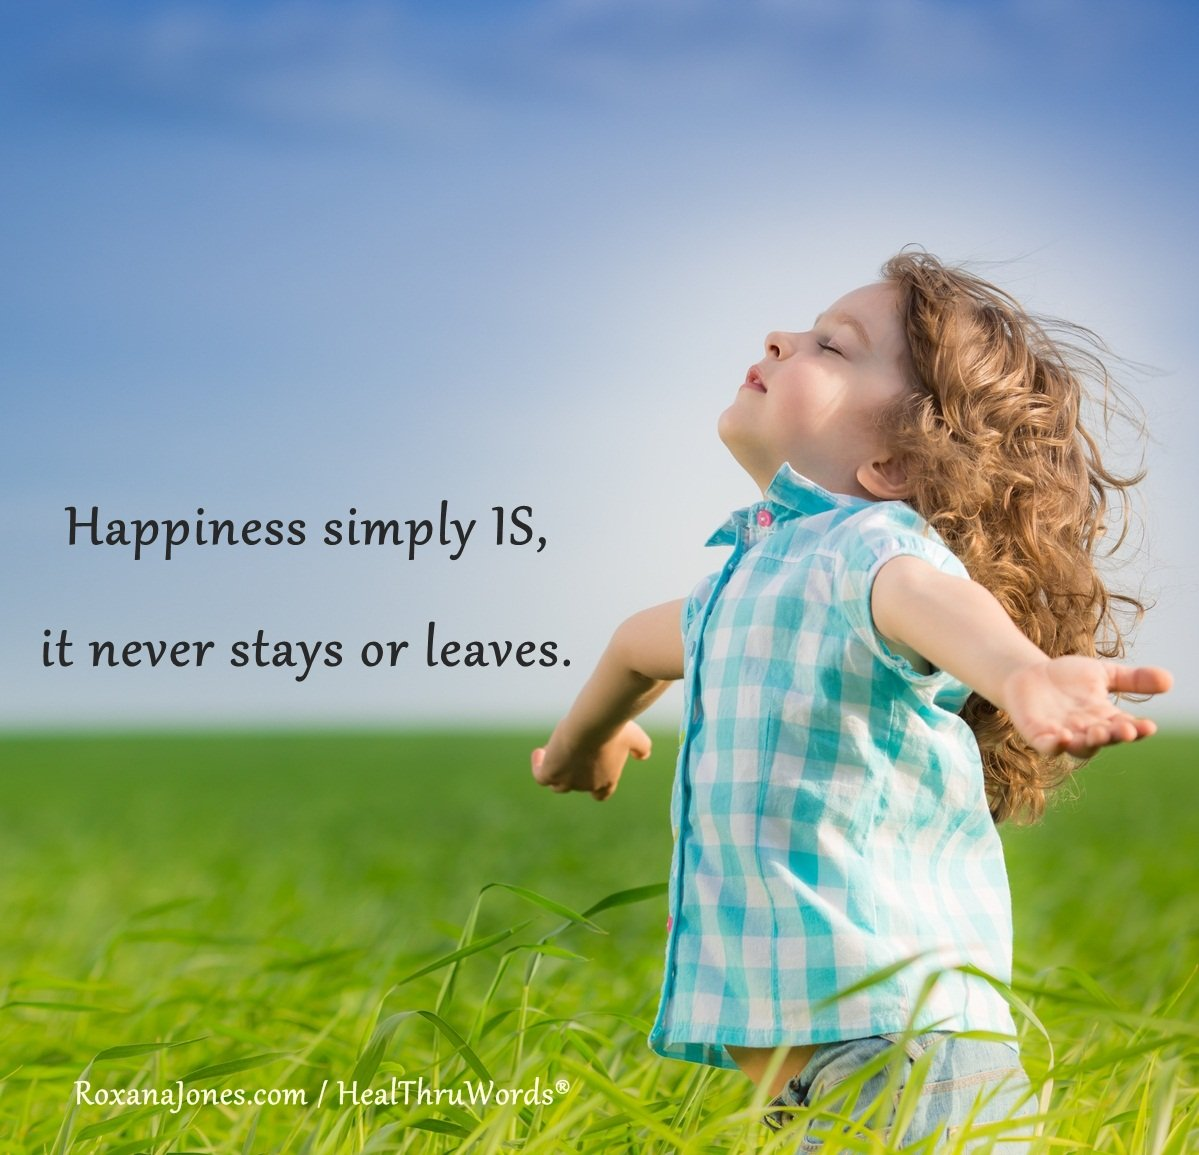 Inspirational Image: Happiness Is